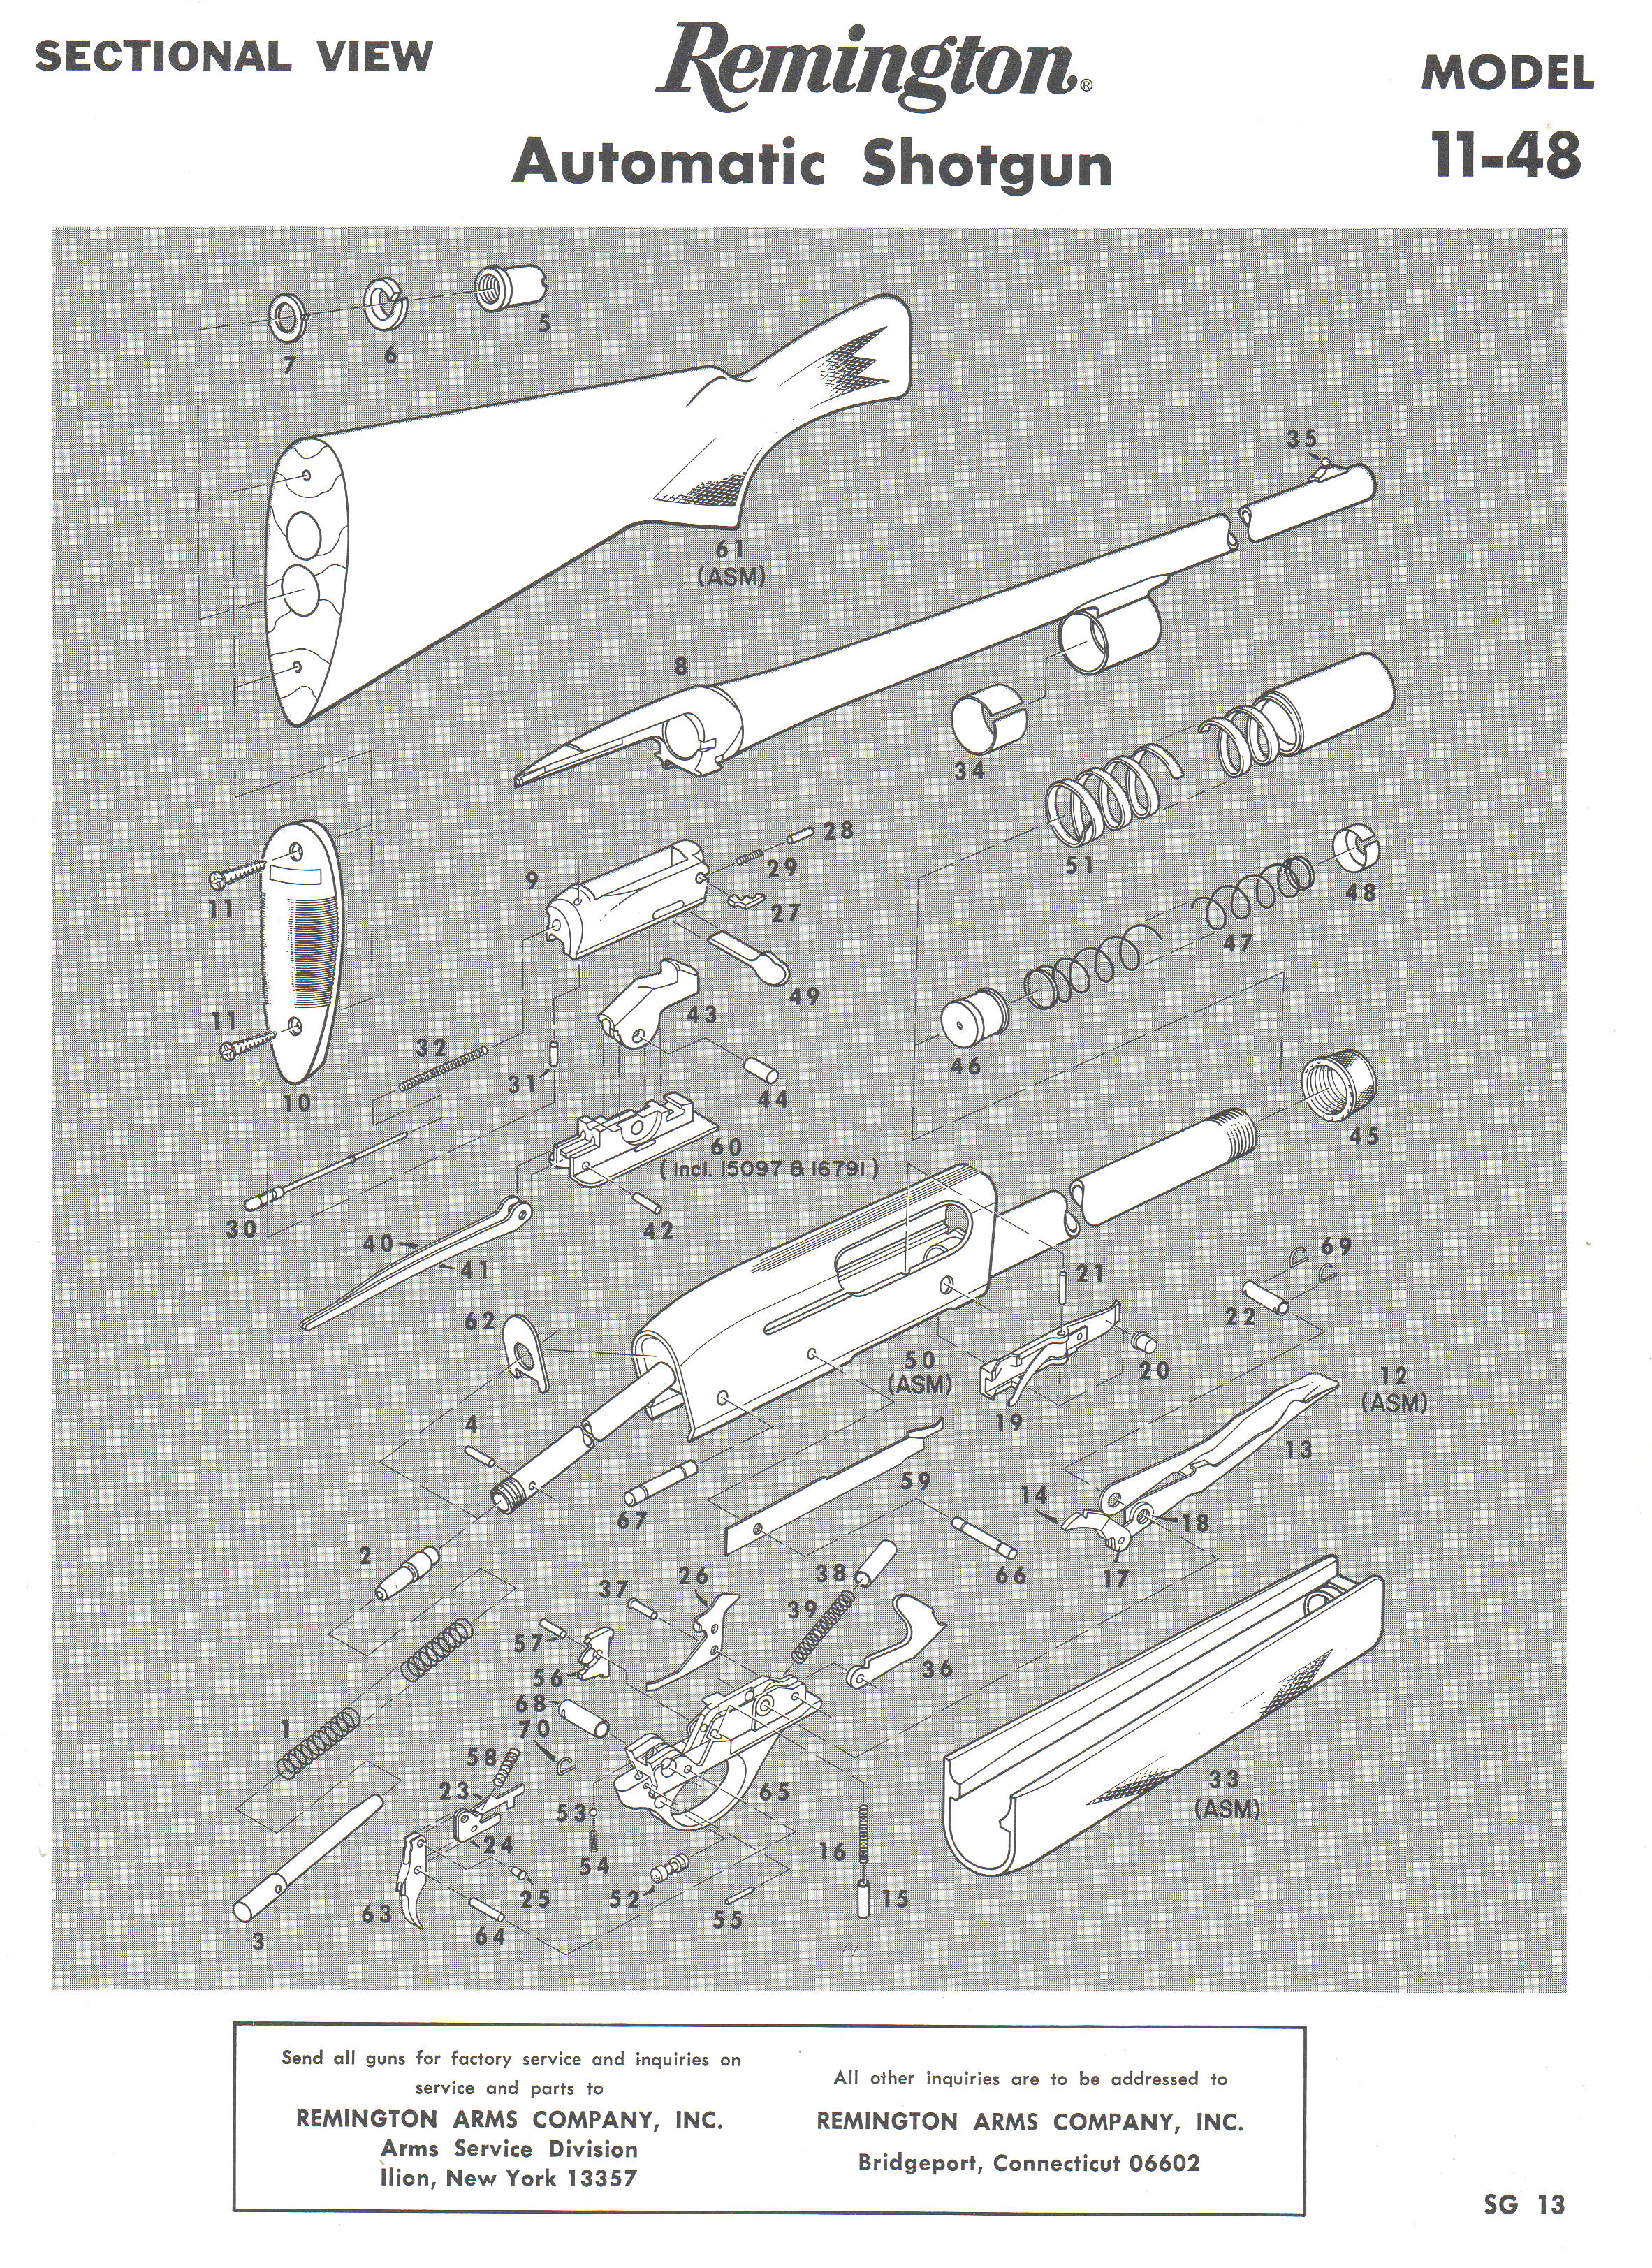 Remington 11 87 Parts Diagram Fotos 1187 Http Www Gun Com Remingtonshotgun